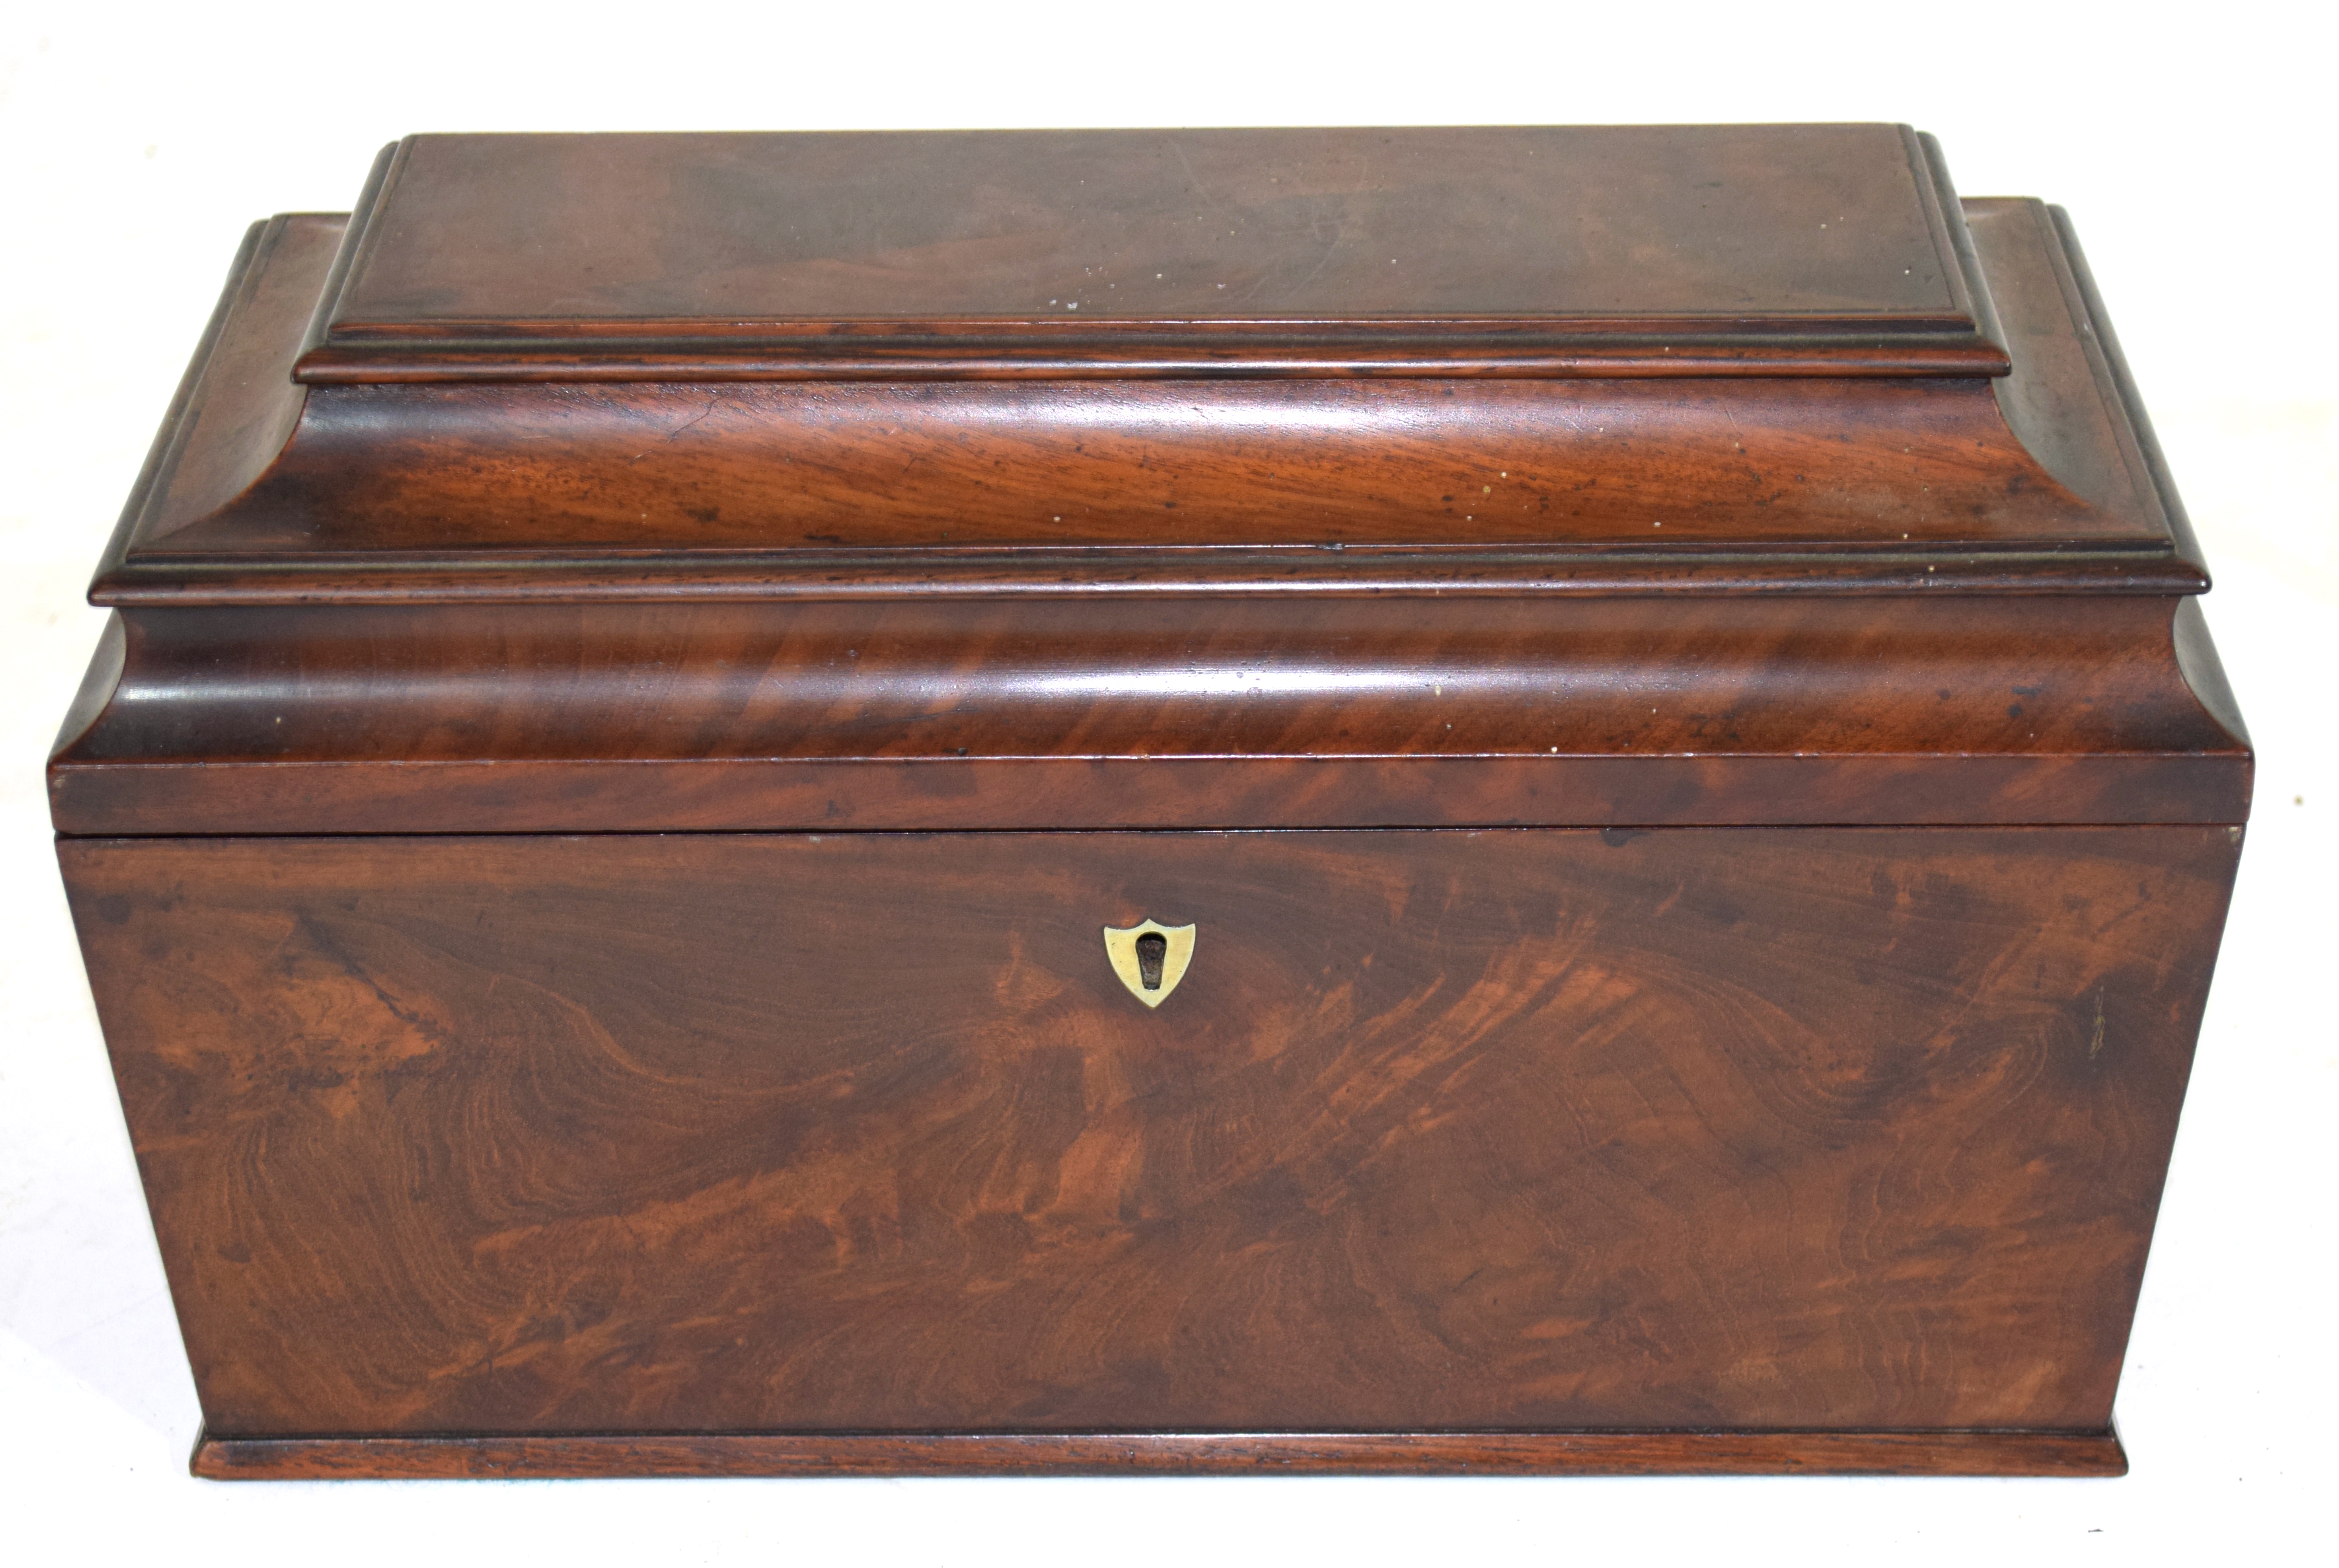 Georgian mahogany sarcophagus formed tea caddy, the hinged lid opening to an interior with two